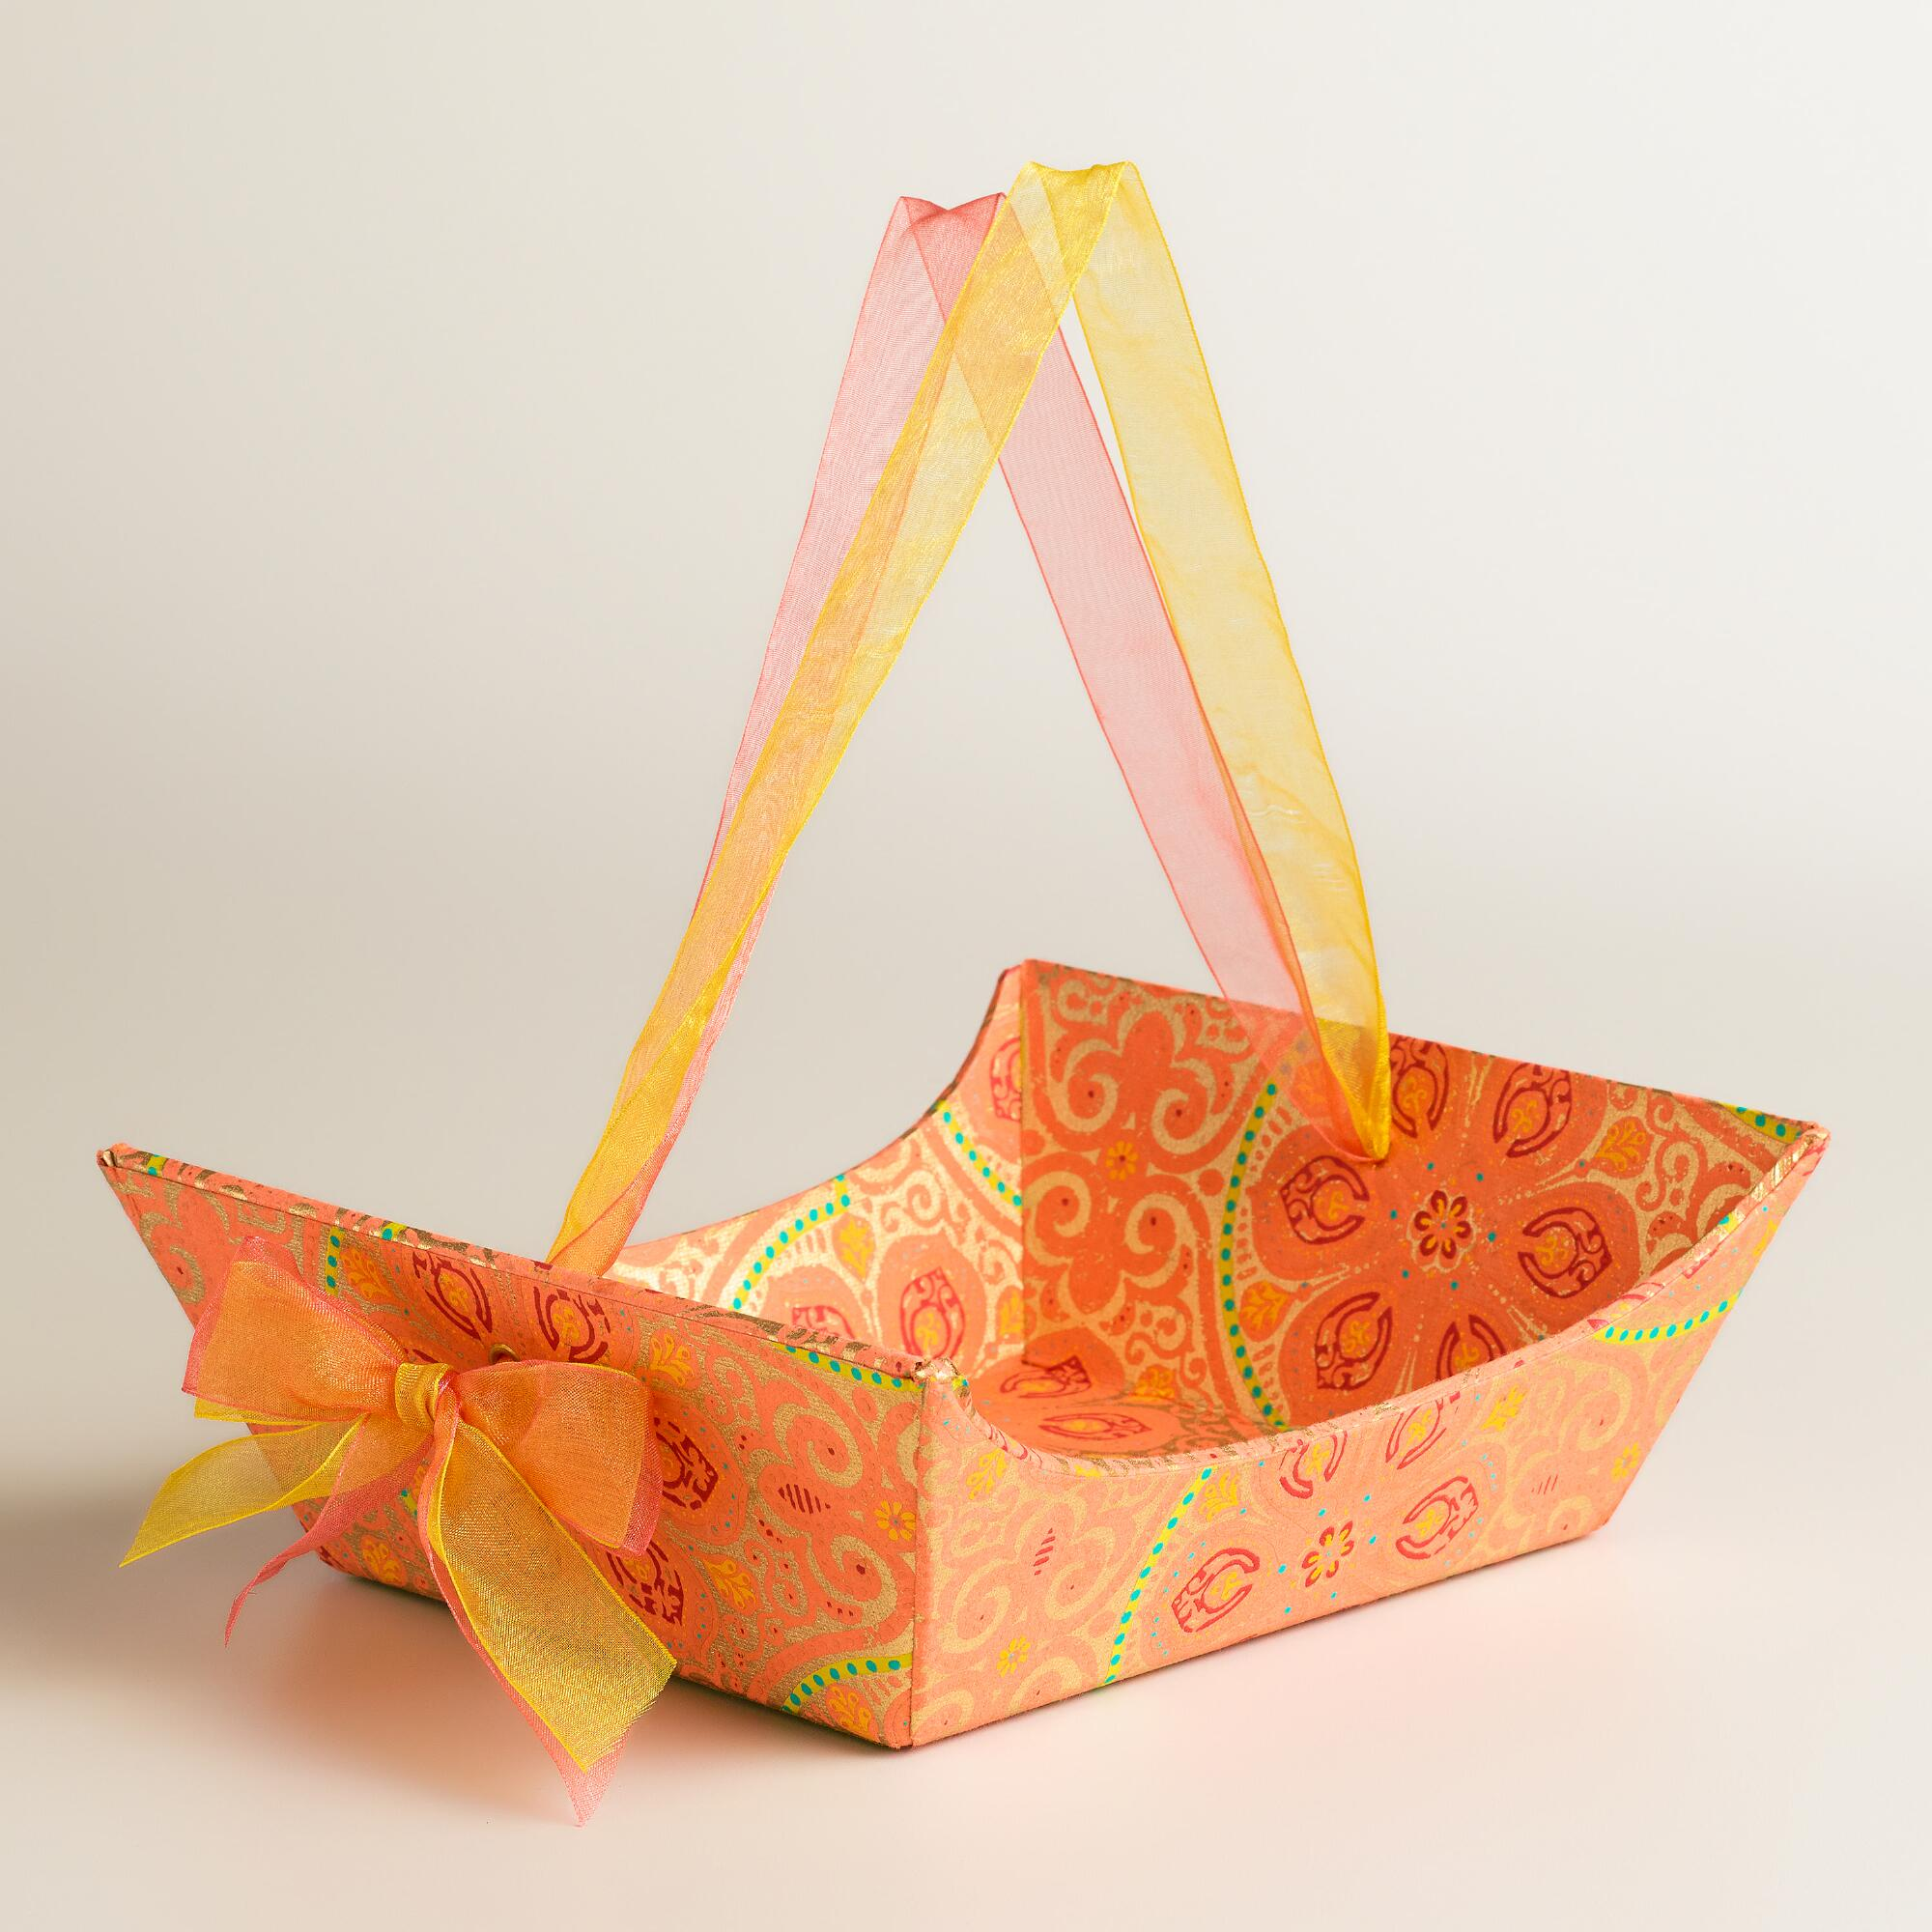 Handmade Basket Paper : Small red nomad tiles handmade paper gift basket world